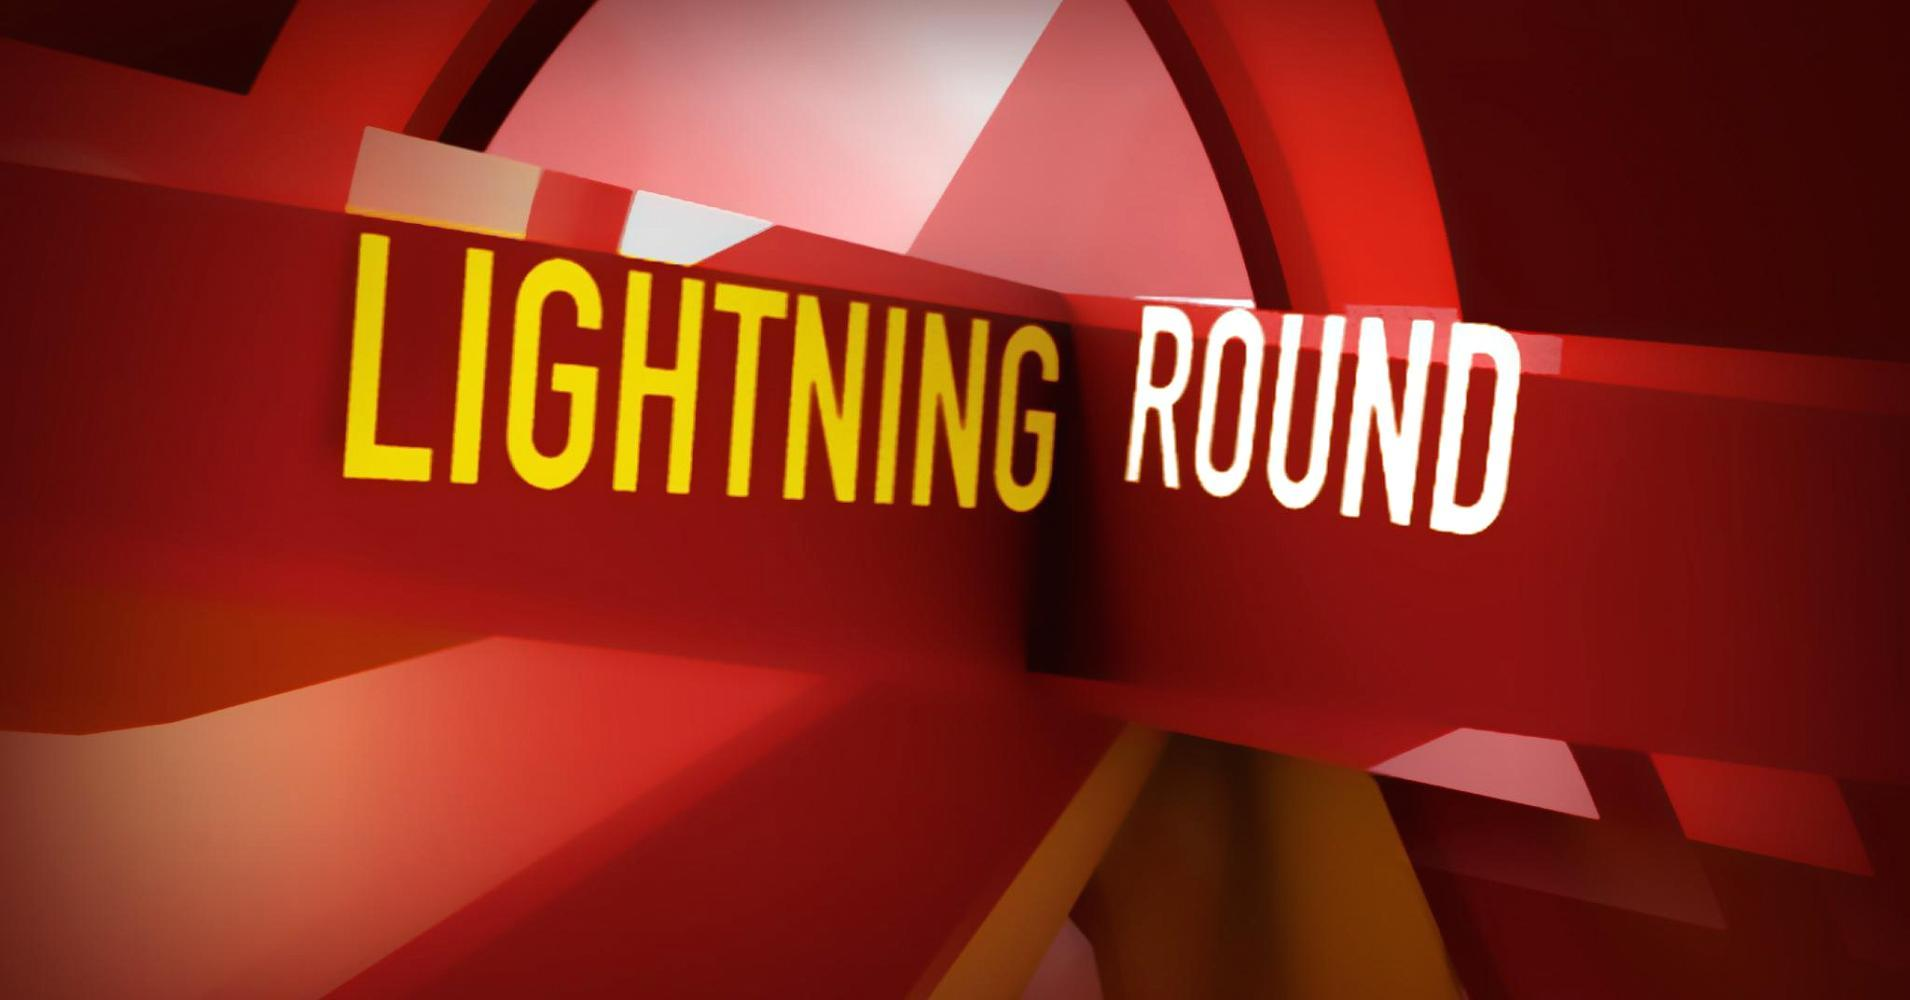 Lightning Round: This oil stock totally screwed up